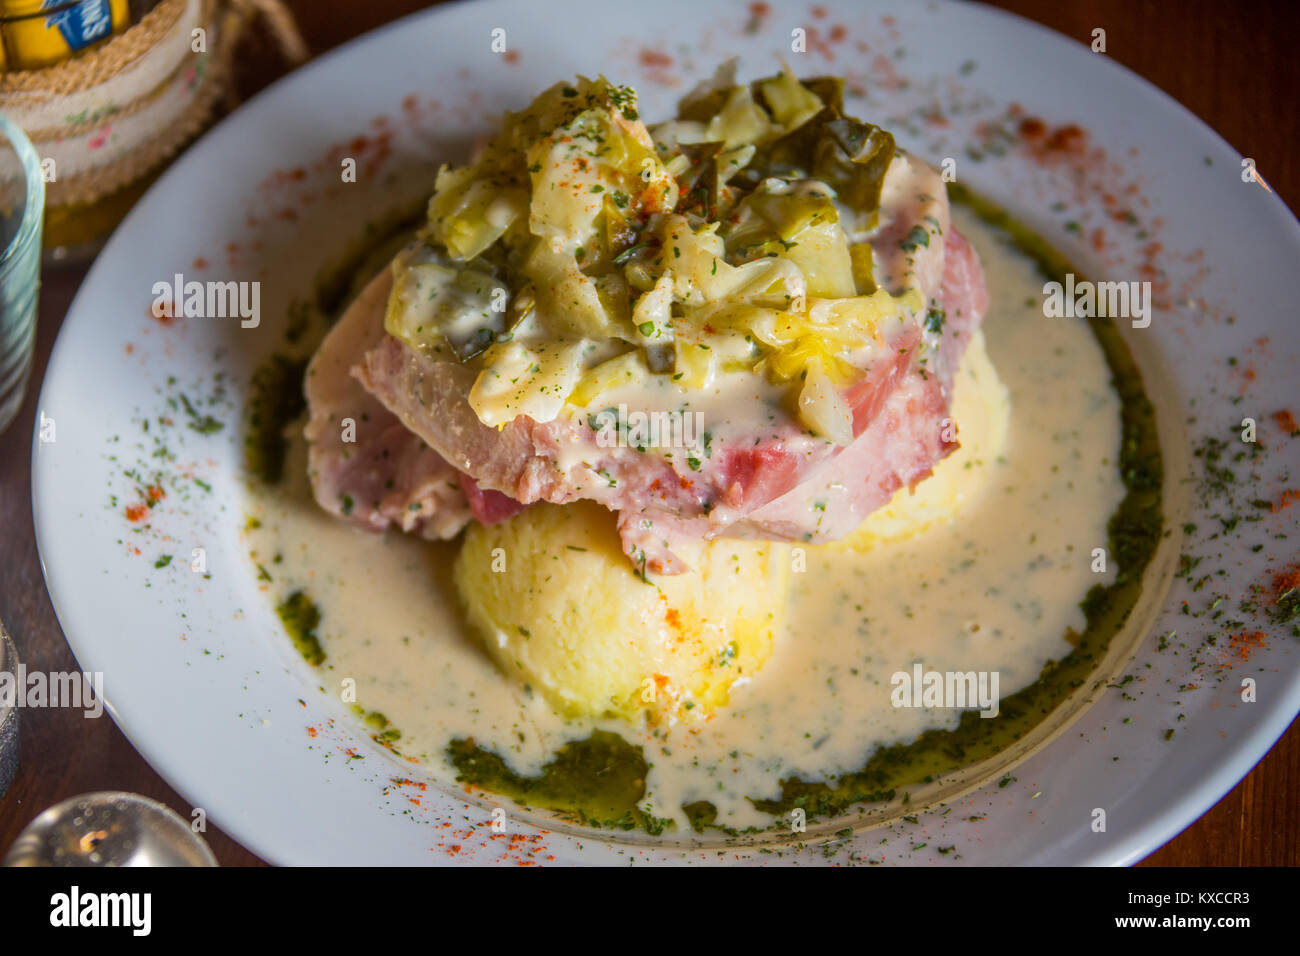 Traditional Bacon and Cabbage, Vaughan's Pub in Kilfenora, Co Clare, Ireland - Stock Image